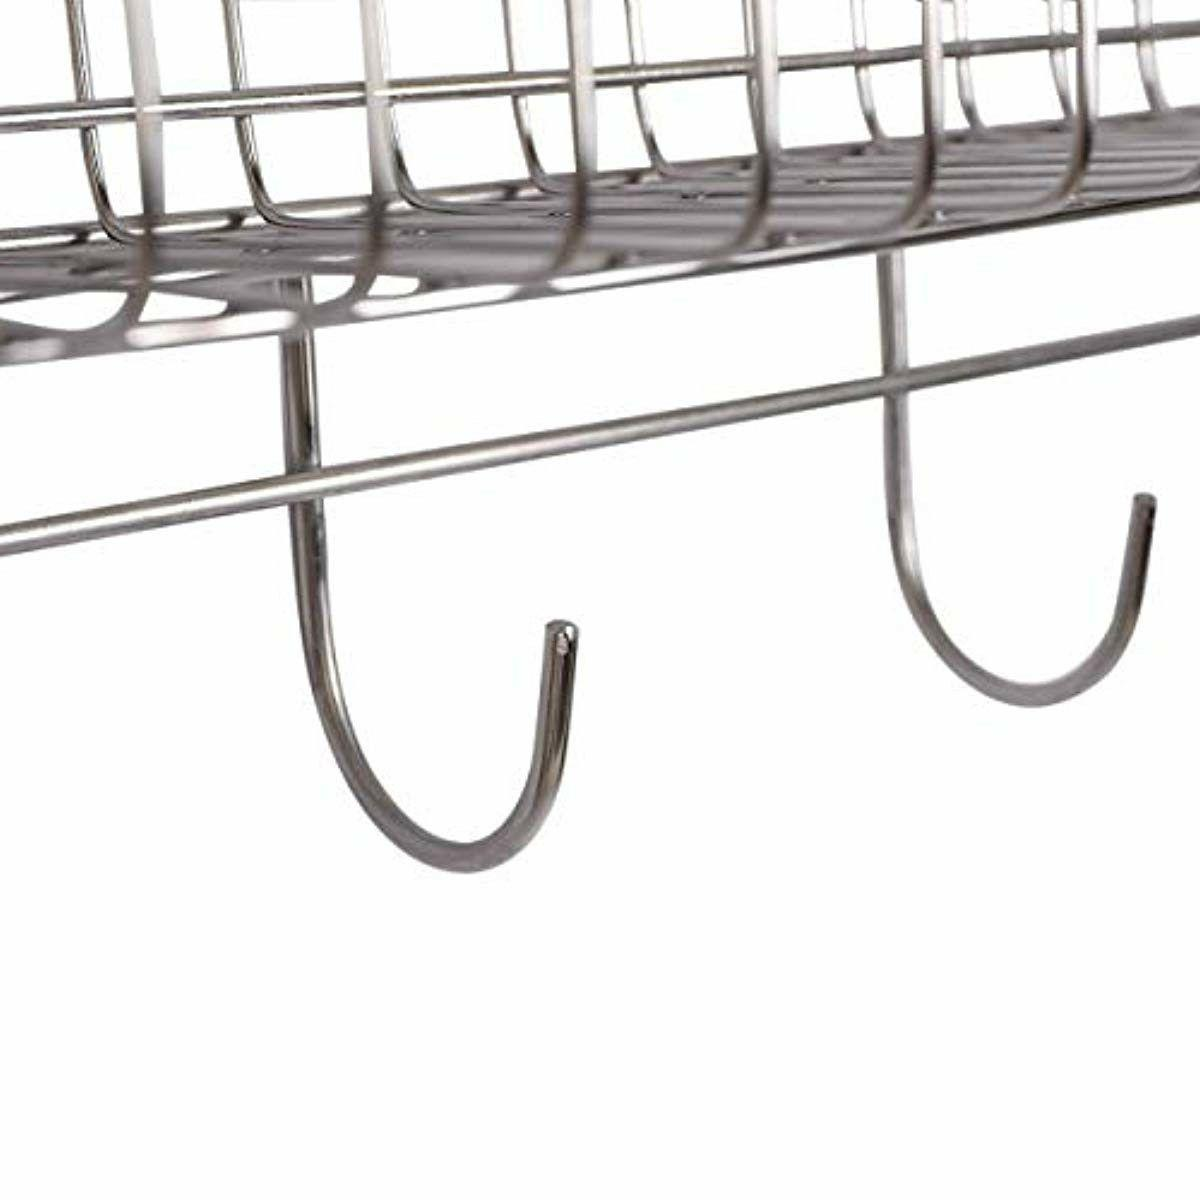 Wall Kitchen Rack Organizer With Utensil Hooks Chrome